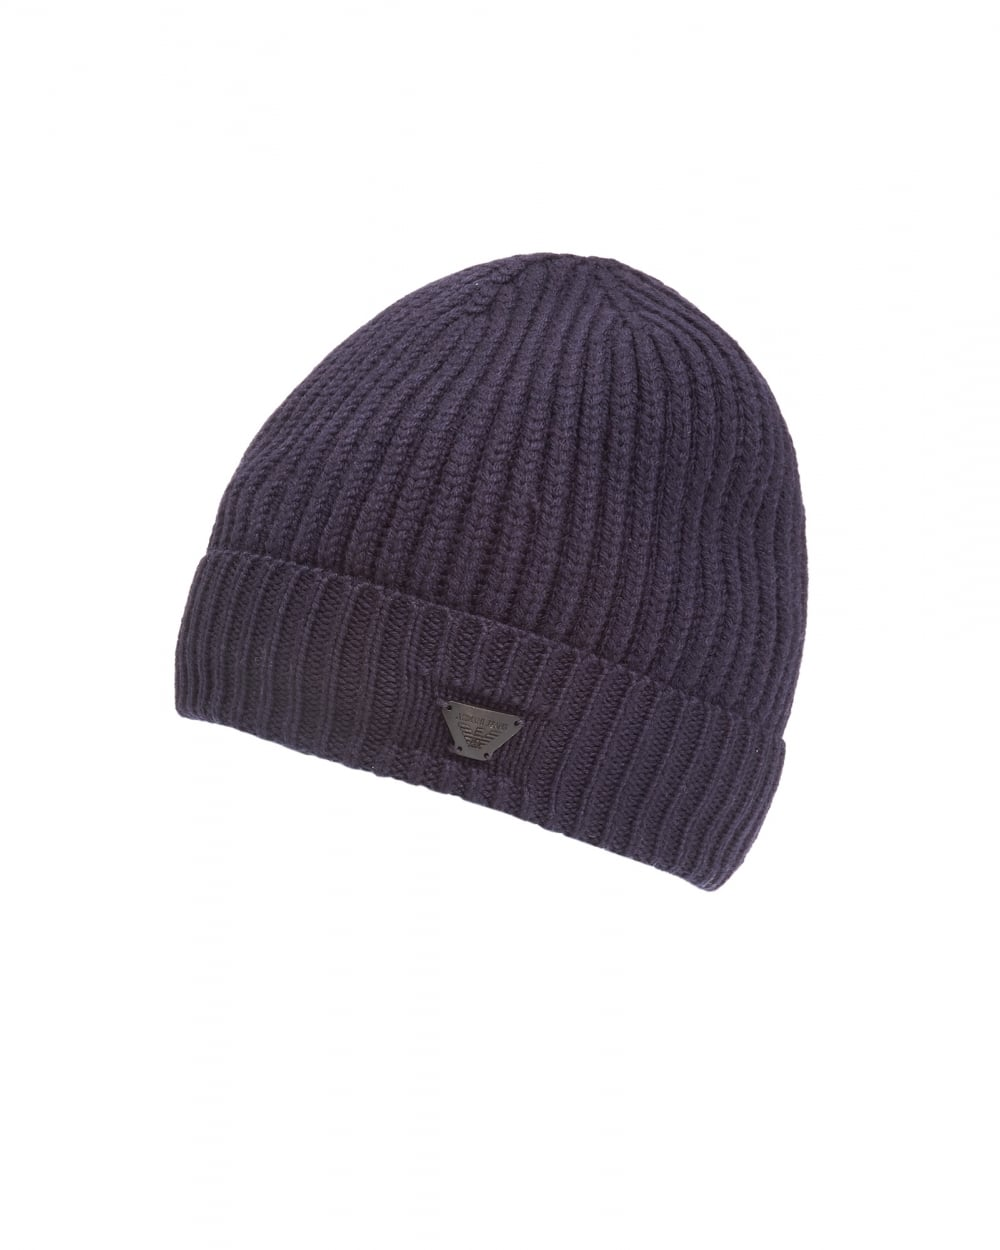 Armani Jeans Mens Ribbed Wool Logo Badge Navy Blue Beanie Hat b8c67657d15